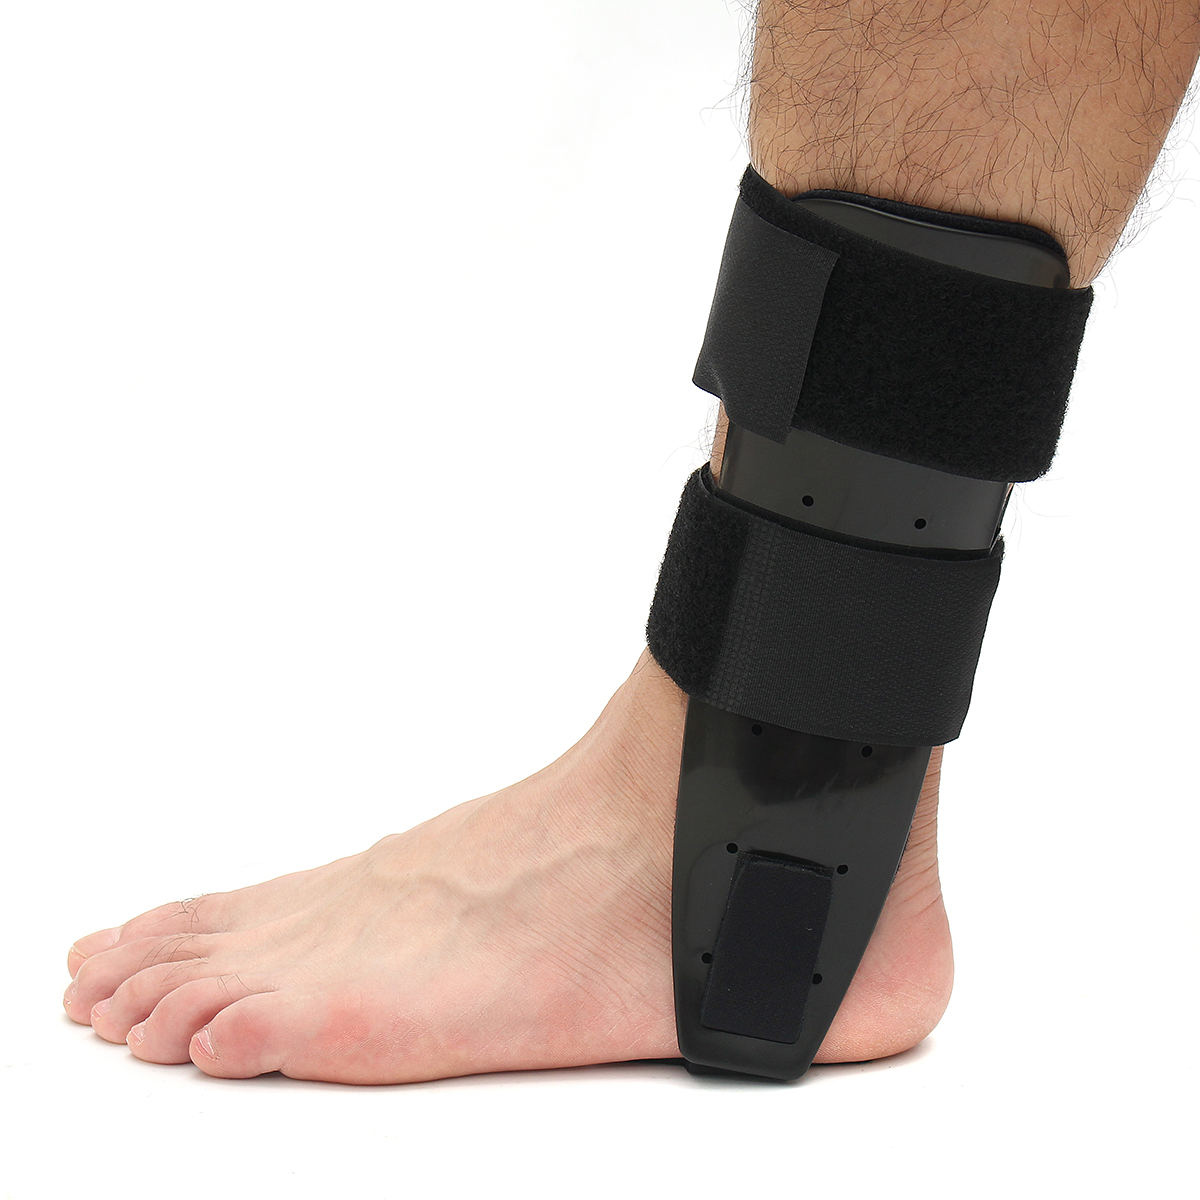 Ankle Support Brace Guard Sports Foot Sprain Injury Strap Stabilizer Orthosis Adjustable Breathable Elastic Ankle Pad Protector